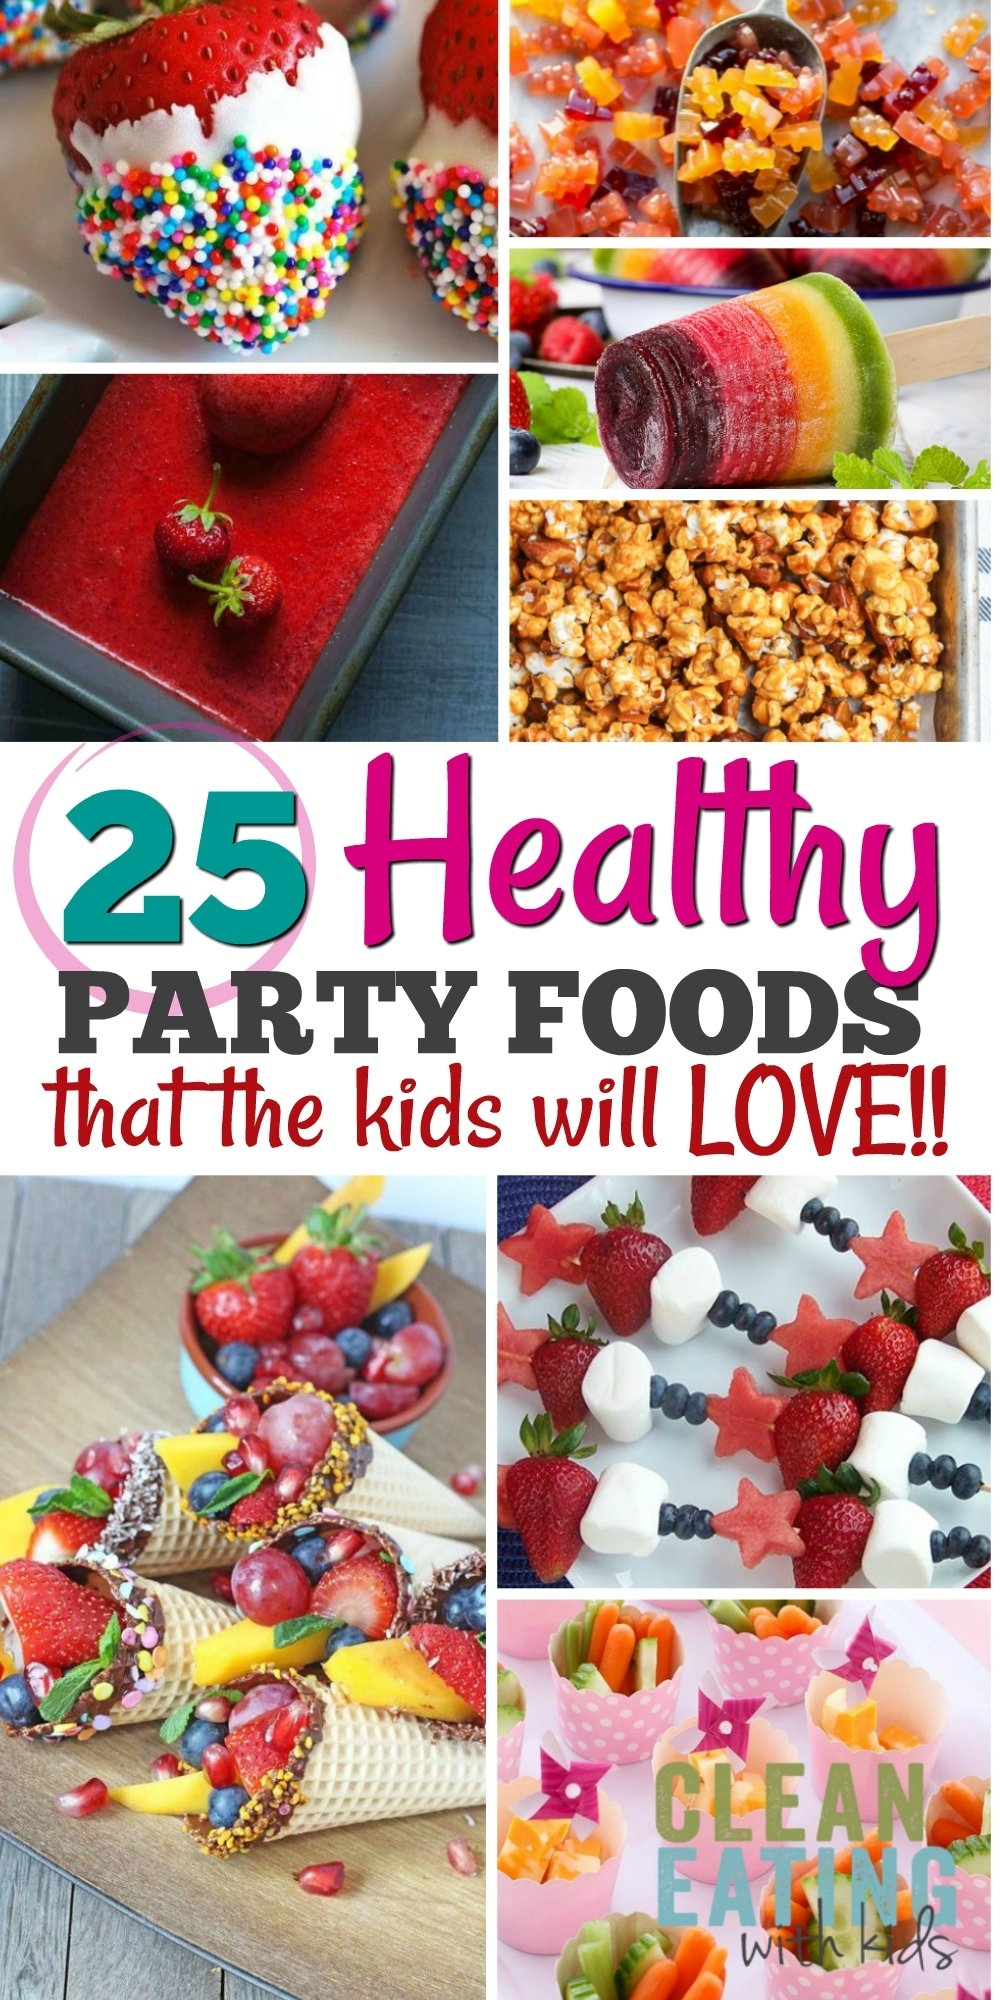 10 Attractive Snack Ideas For A Party 25 healthy birthday party food ideas clean eating with kids 23 2021